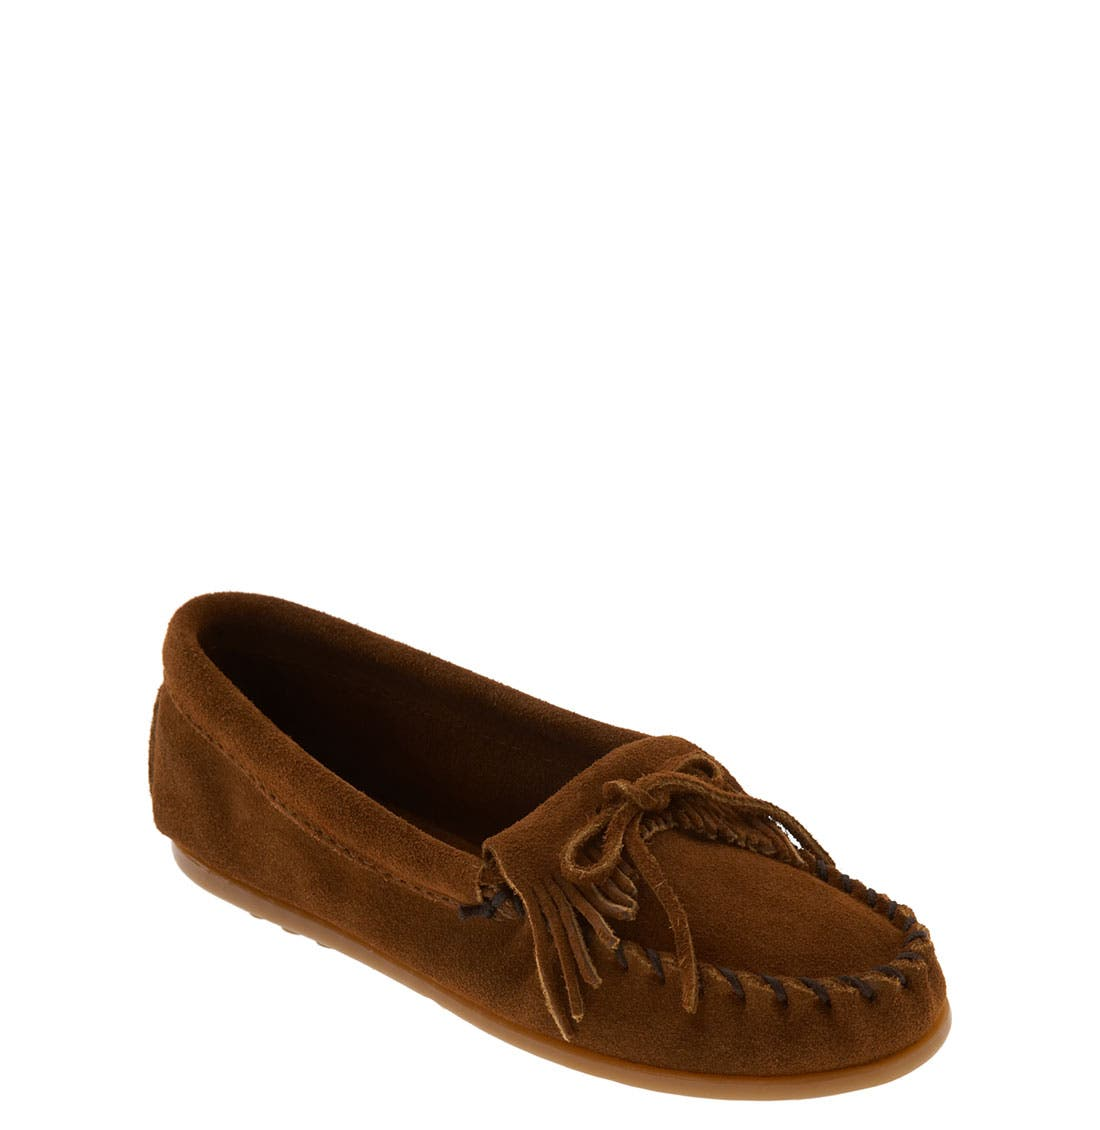 Alternate Image 1 Selected - Minnetonka Kiltie Moccasin (Walker, Toddler, Little Kid & Big Kid)